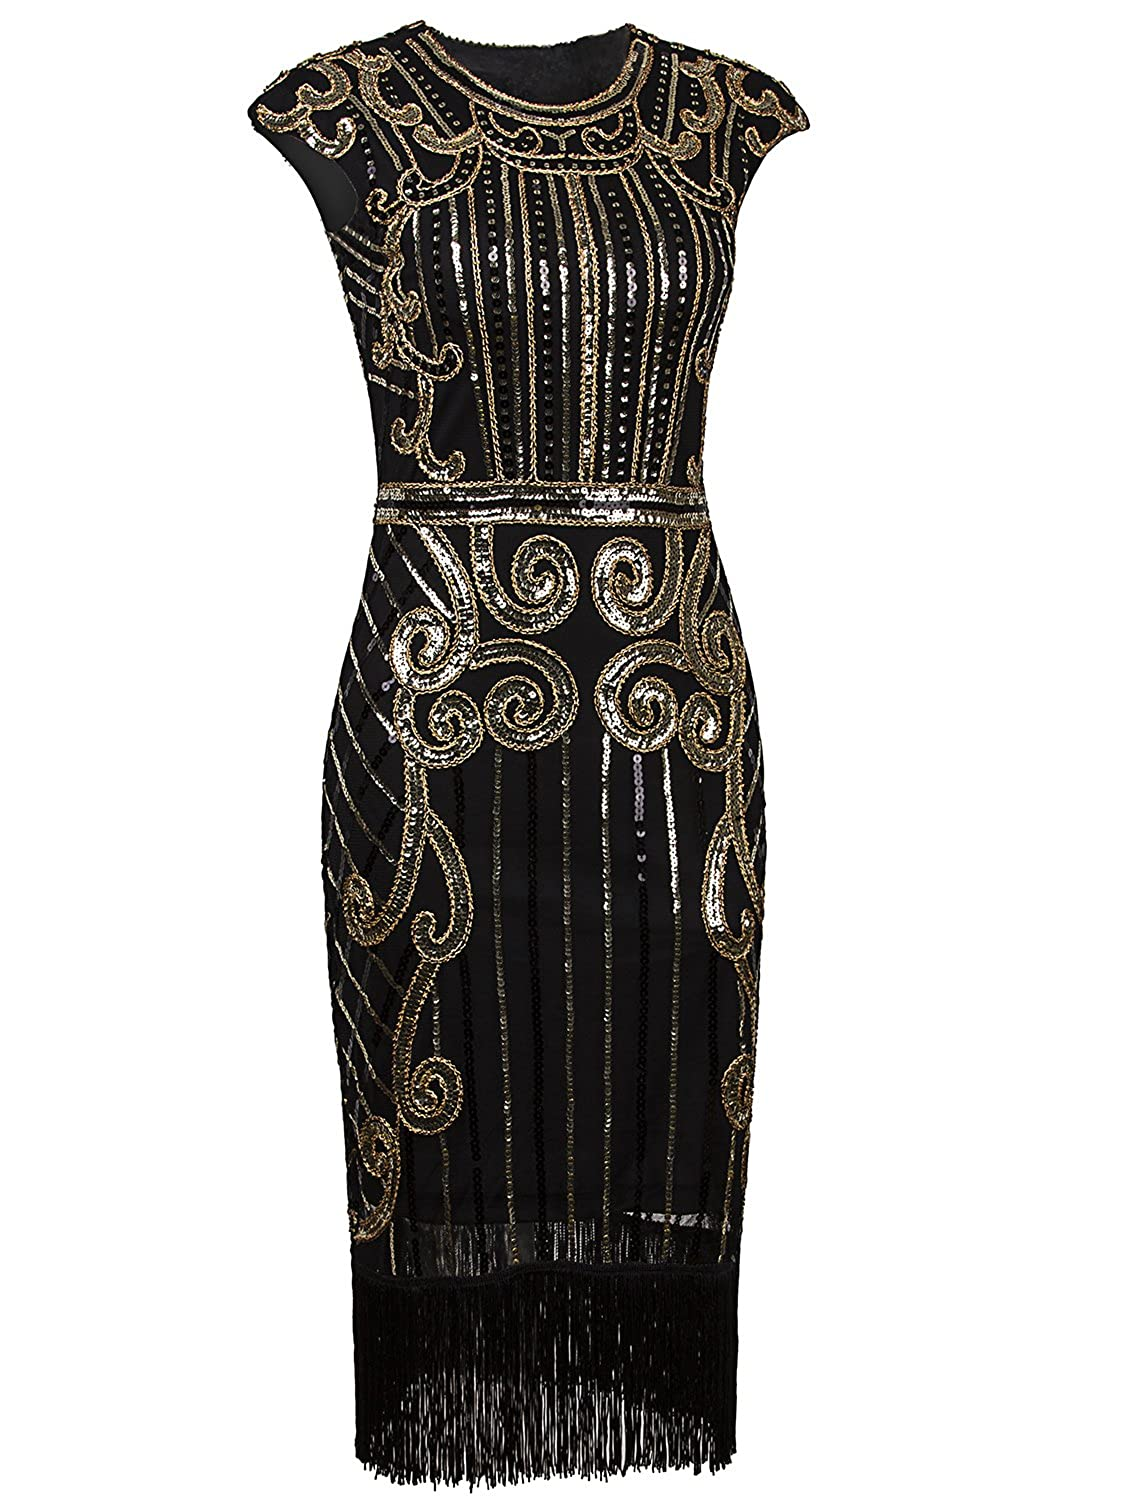 Vintage Inspired Cocktail Dresses, Party Dresses Vijiv 1920s Vintage Inspired Sequin Embellished Fringe Long Gatsby Flapper Dress $33.99 AT vintagedancer.com